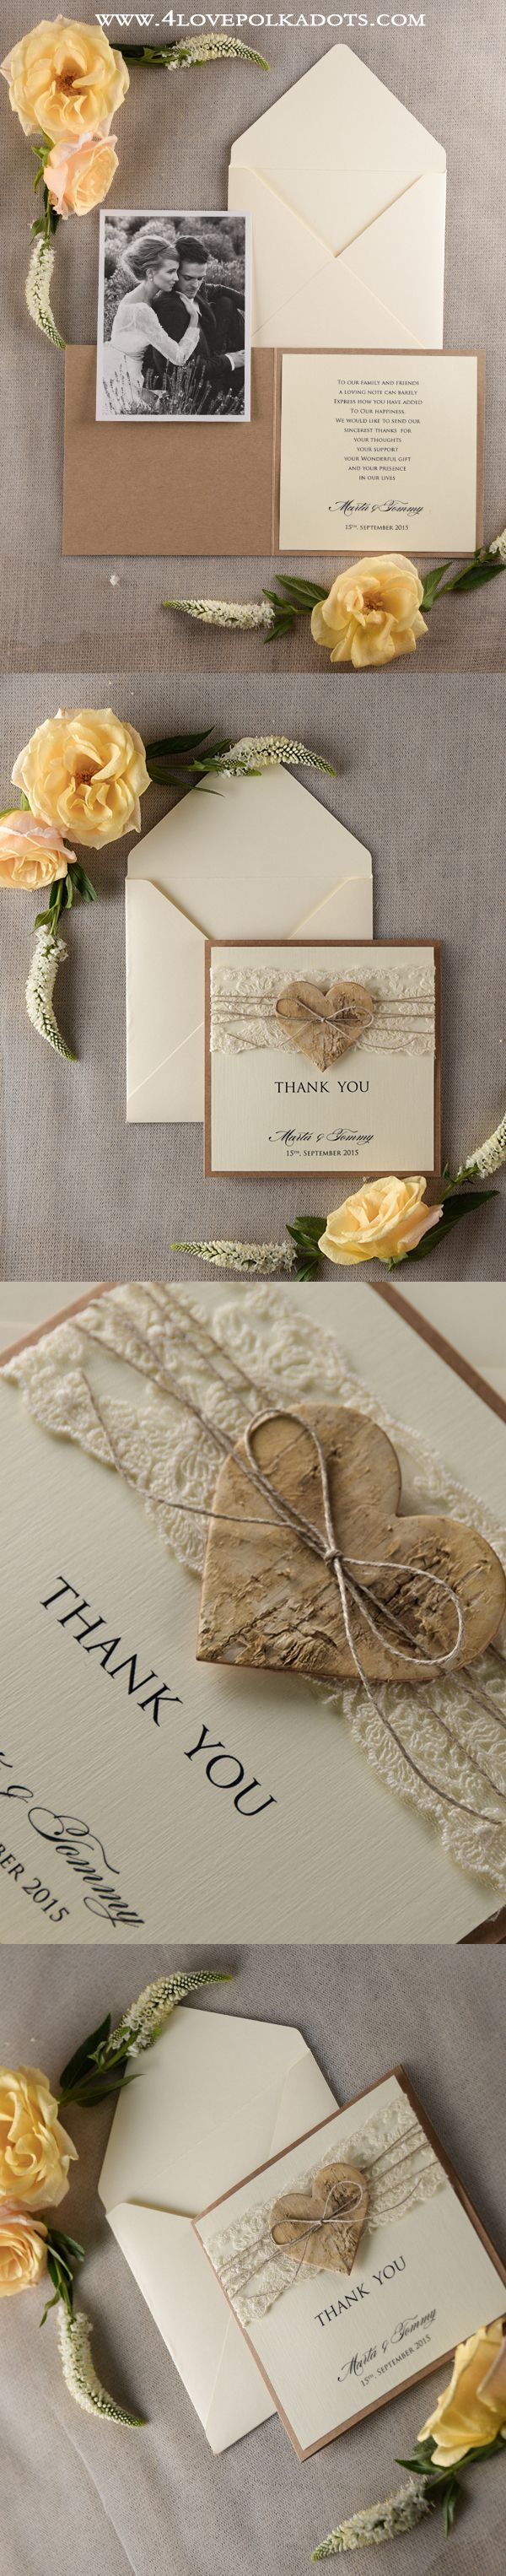 THANK YOU CARDS rustic 200 best Wedding